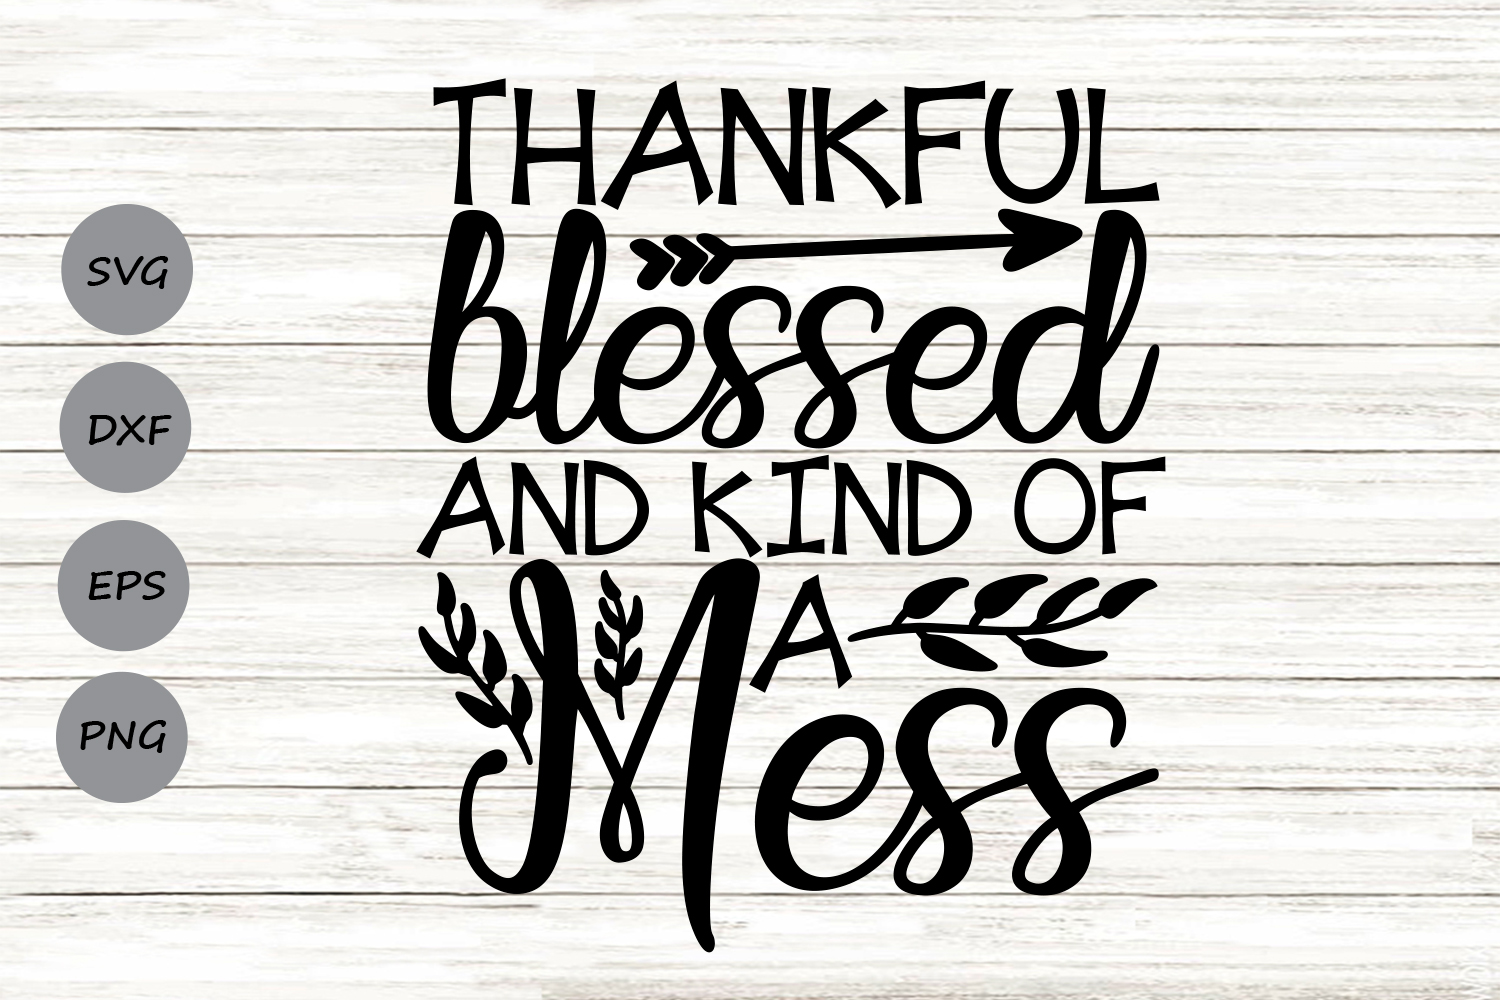 Download Free Thankful Blessed And Kind Of A Mess Graphic By Cosmosfineart for Cricut Explore, Silhouette and other cutting machines.